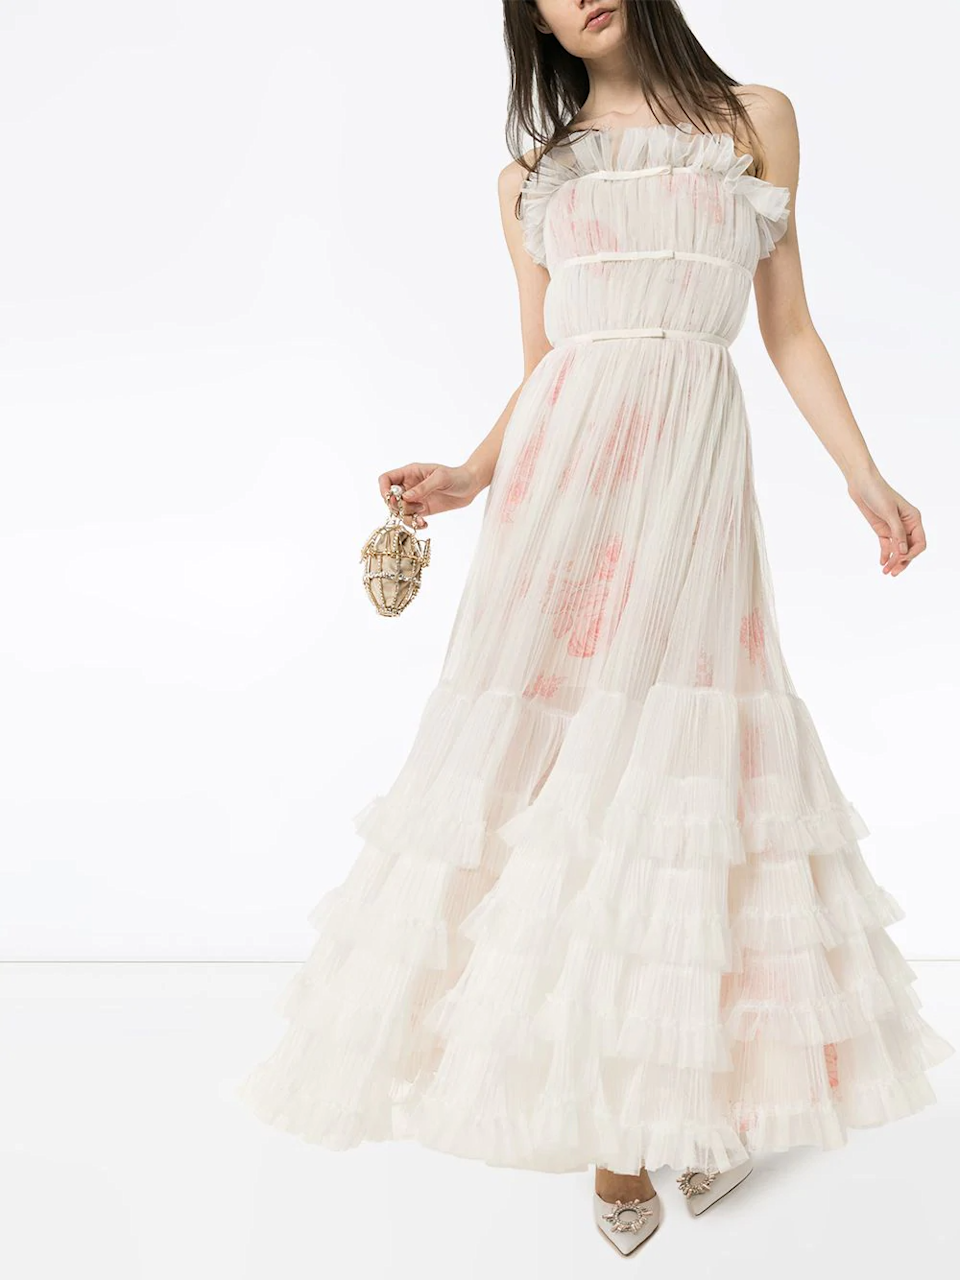 """<h2><a href=""""https://www.farfetch.com/kw/shopping/women/bridal-dresses-1/items.aspx"""" rel=""""nofollow noopener"""" target=""""_blank"""" data-ylk=""""slk:Farfetch"""" class=""""link rapid-noclick-resp"""">Farfetch</a></h2><br>For those looking for a dress that only <em>looks</em> bridal, Farfetch has styles from high-end brands like Lanvin, Giambattista Valli, and Saint Laurent. If bridal is what you're after, though, the retailer does carry labels like Jenny Packham and Temperley London who are beloved for their wedding styles."""